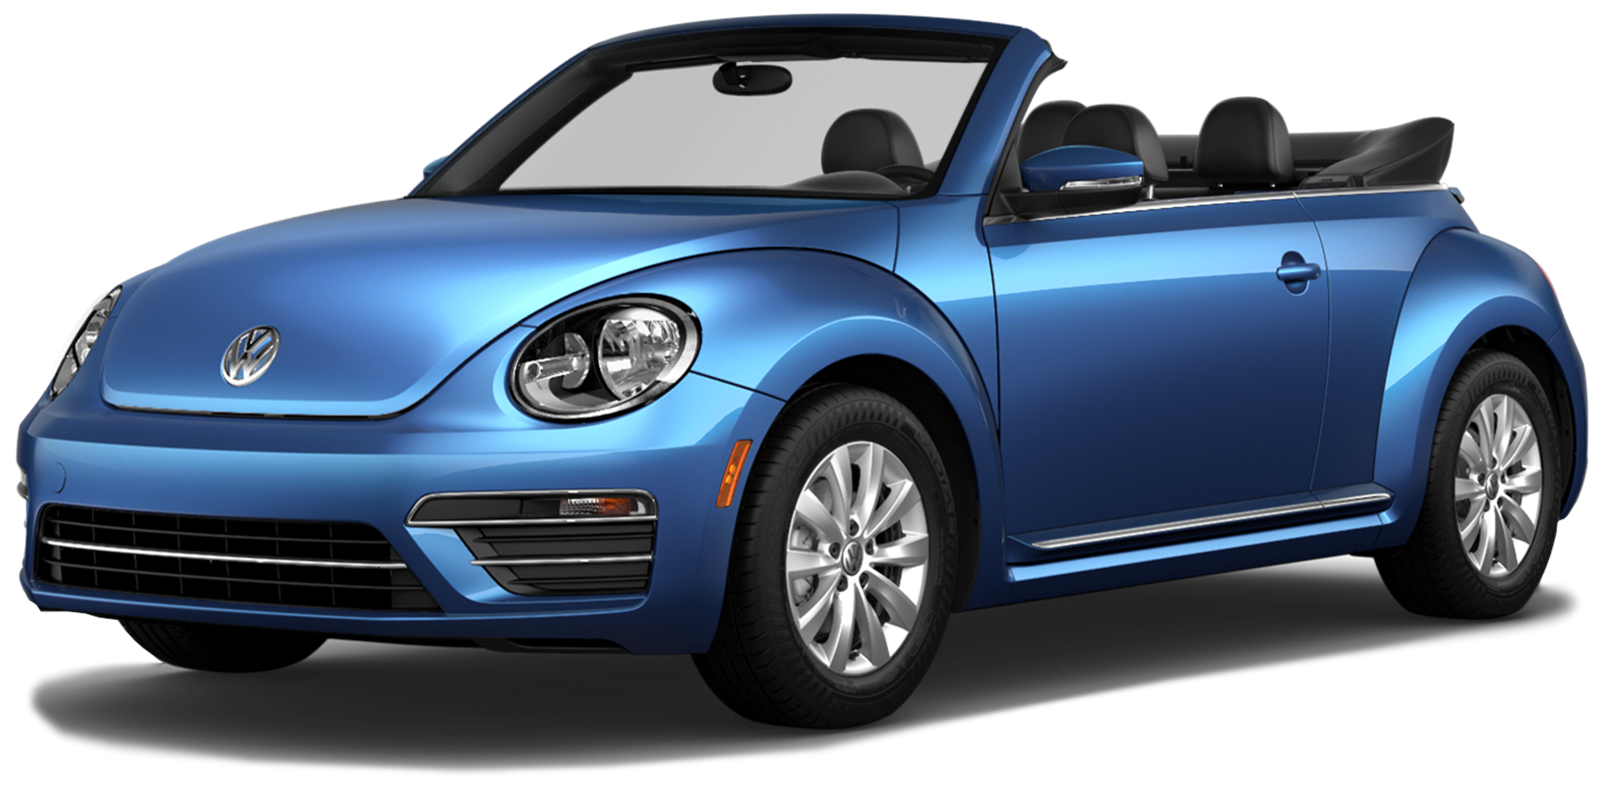 2019 volkswagen beetle incentives specials offers in. Black Bedroom Furniture Sets. Home Design Ideas